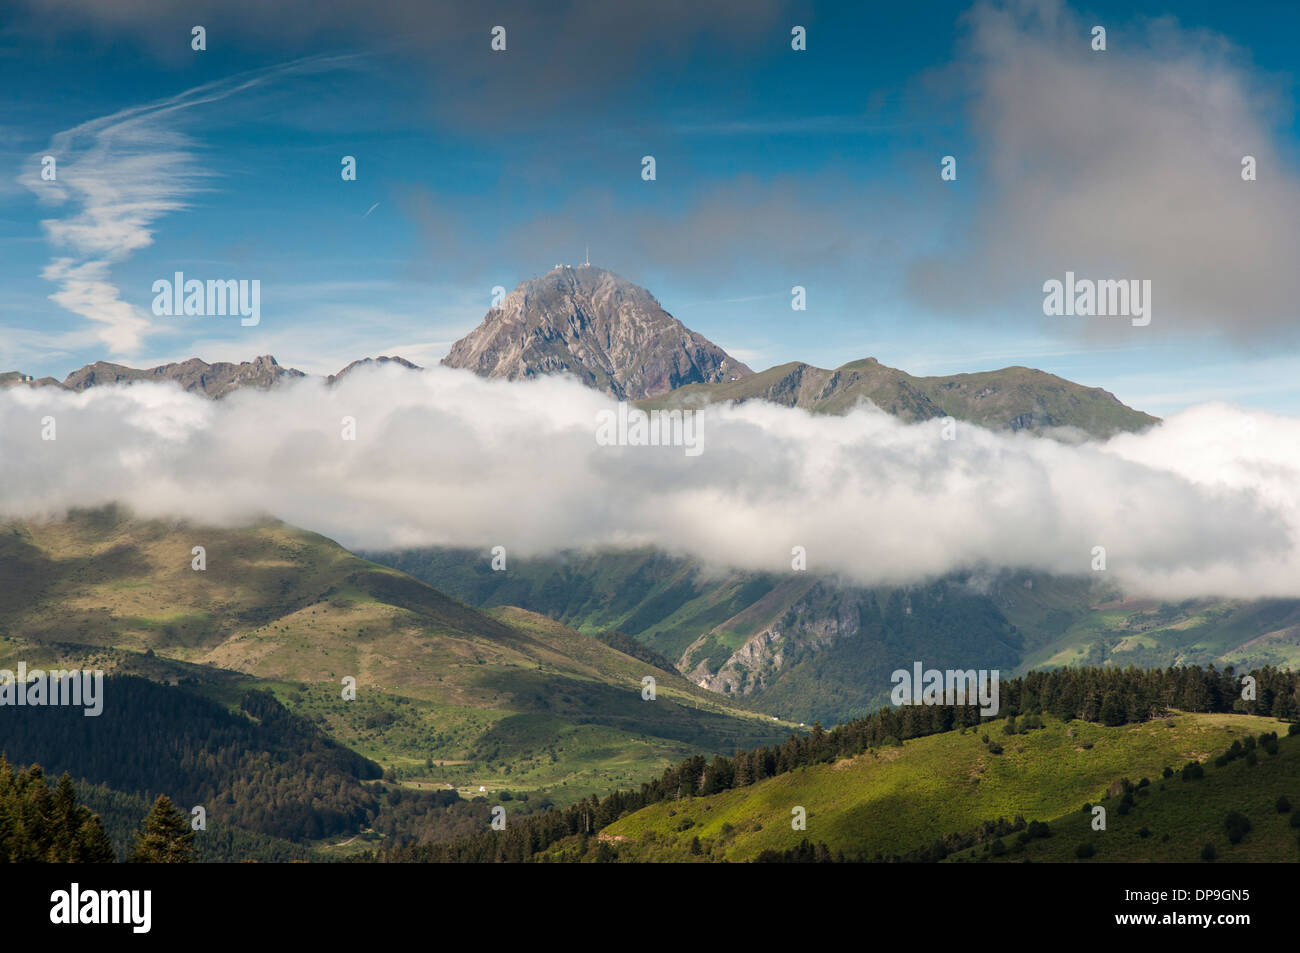 View from the Col d'Aspin towards Pic du Midi de Bigorre (2876m) in the French Pyrenees Stock Photo